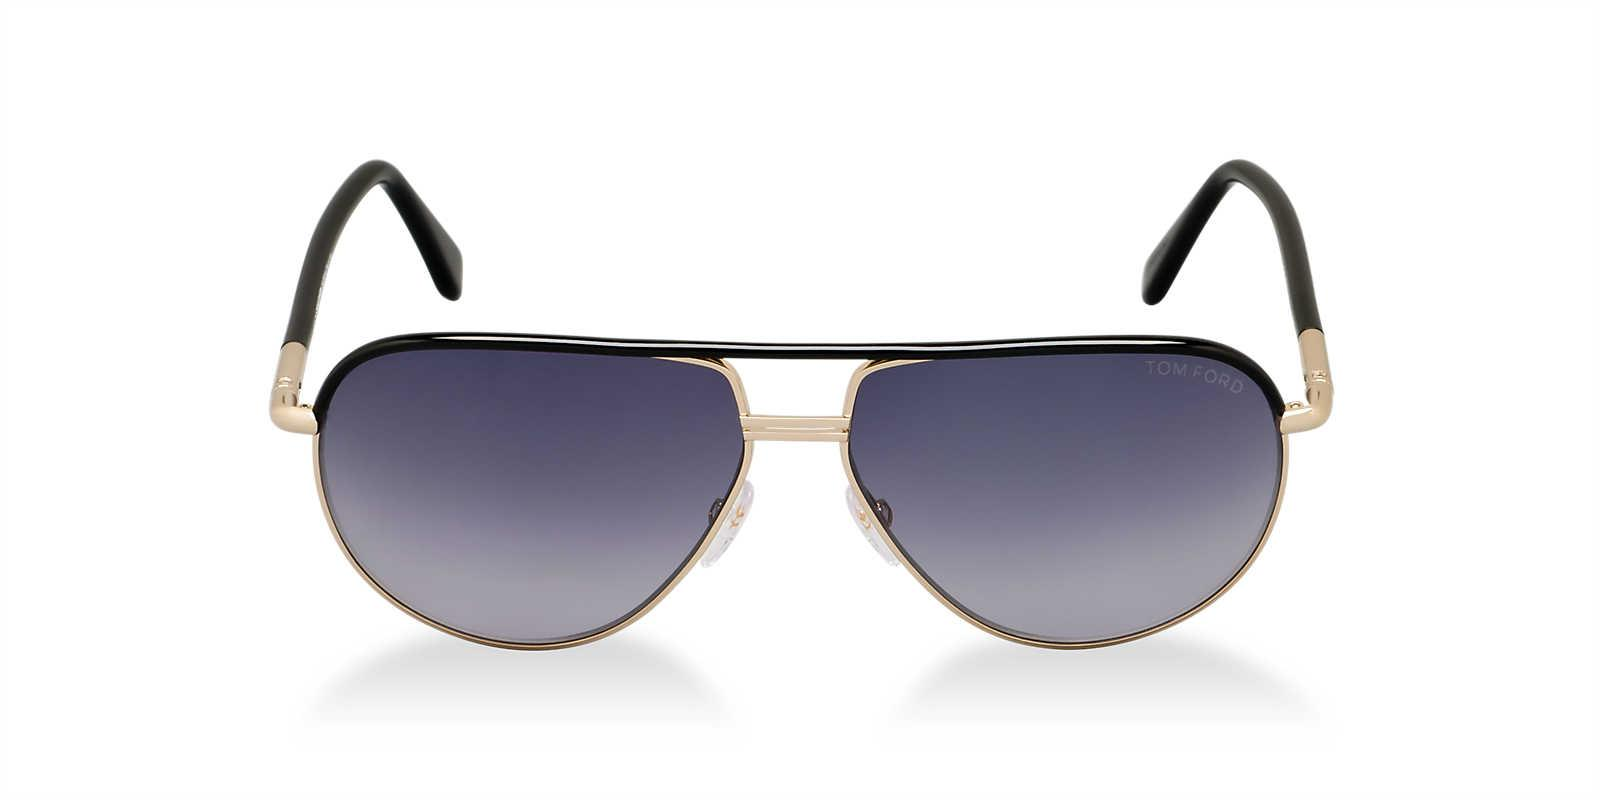 8d0f03a68e Gallery. Previously sold at  Sunglass Hut · Men s Aviator ...